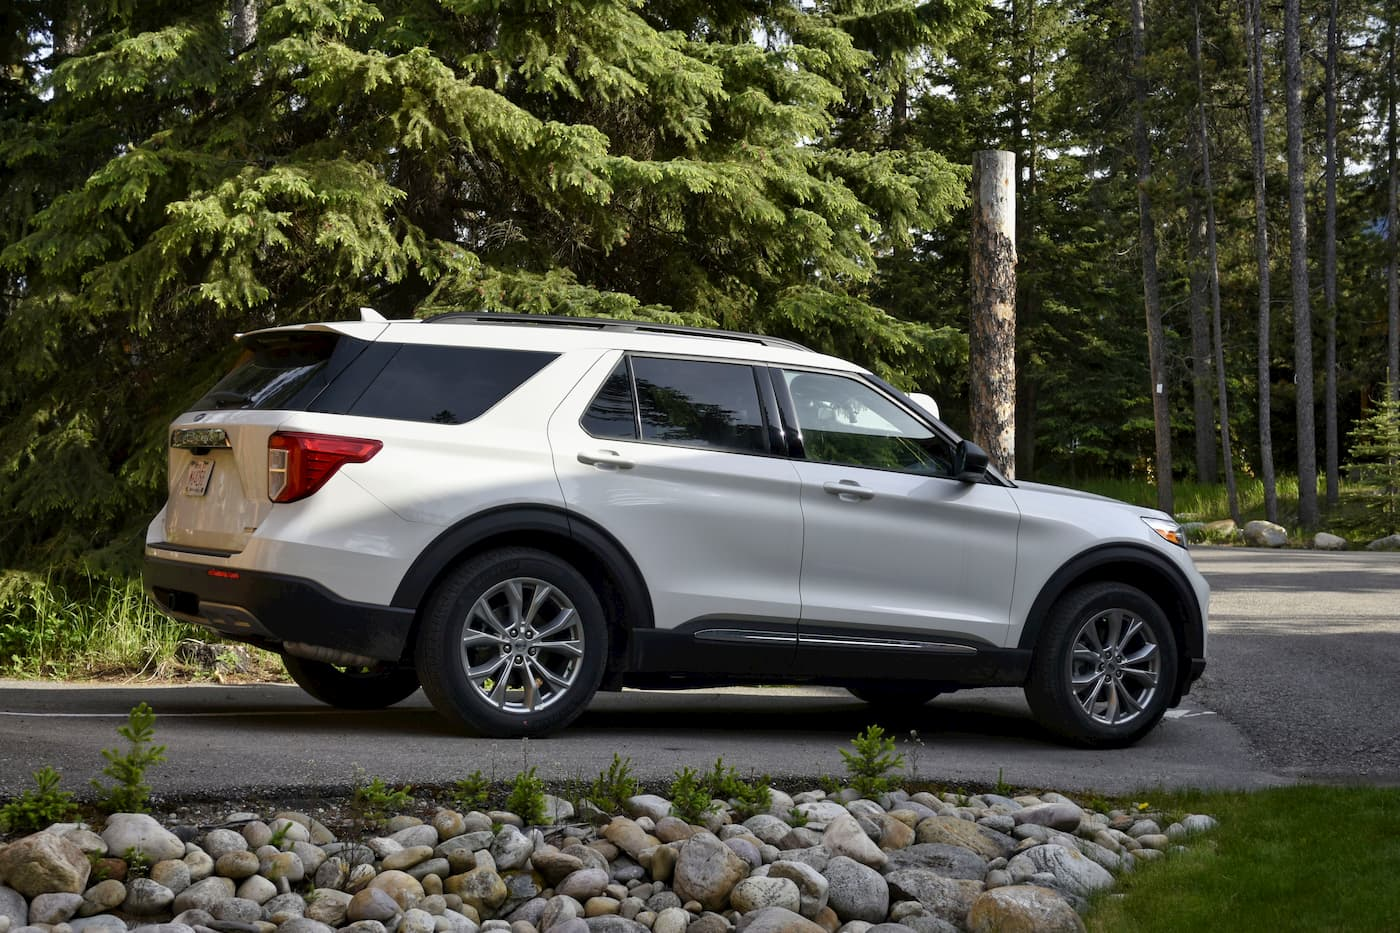 2020 White Ford Explorer Parked By Tree